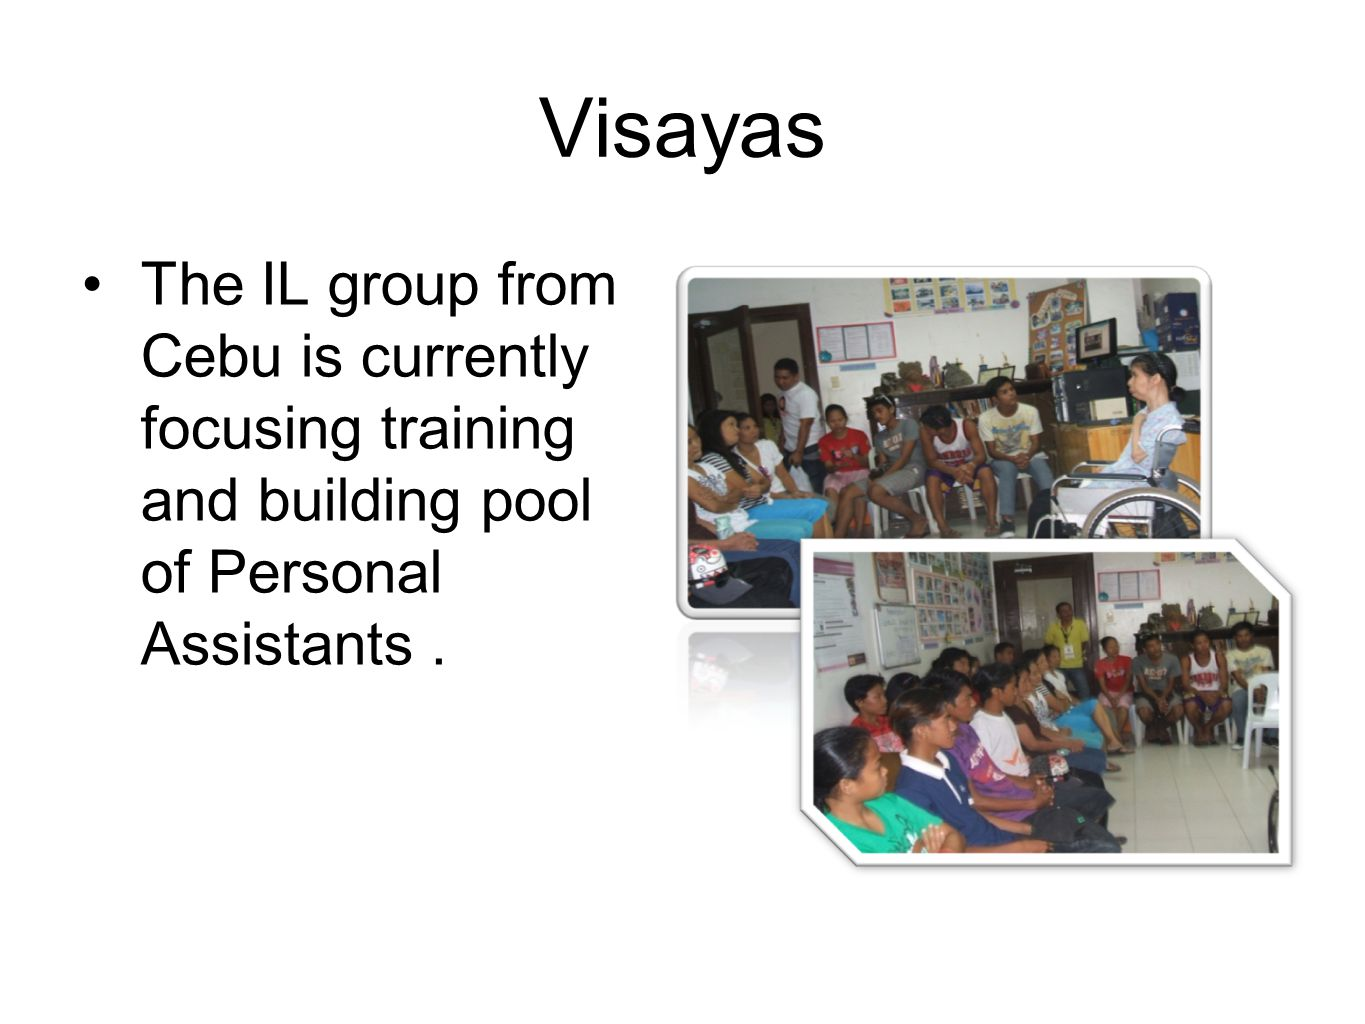 Visayas The IL group from Cebu is currently focusing training and building pool of Personal Assistants.